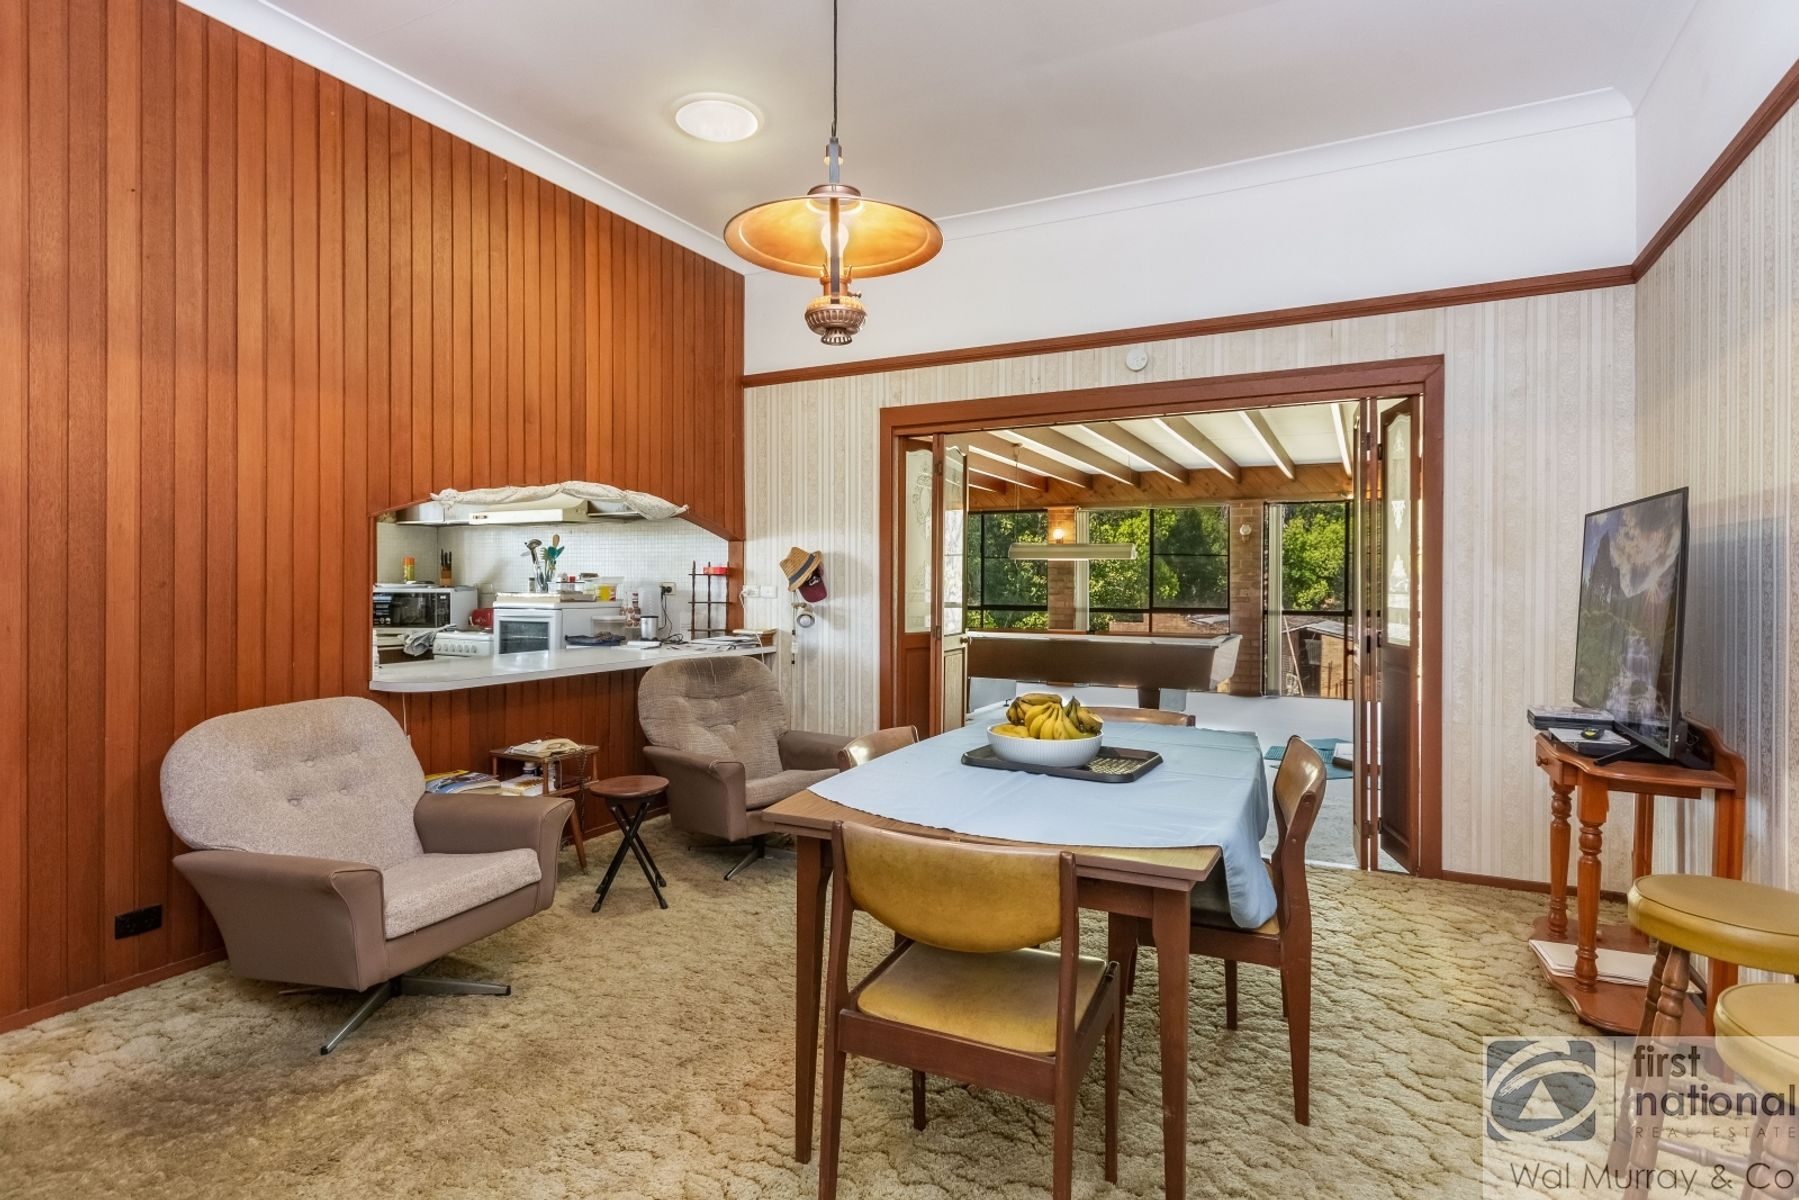 15-21 Coleman Street, Bexhill, NSW 2480